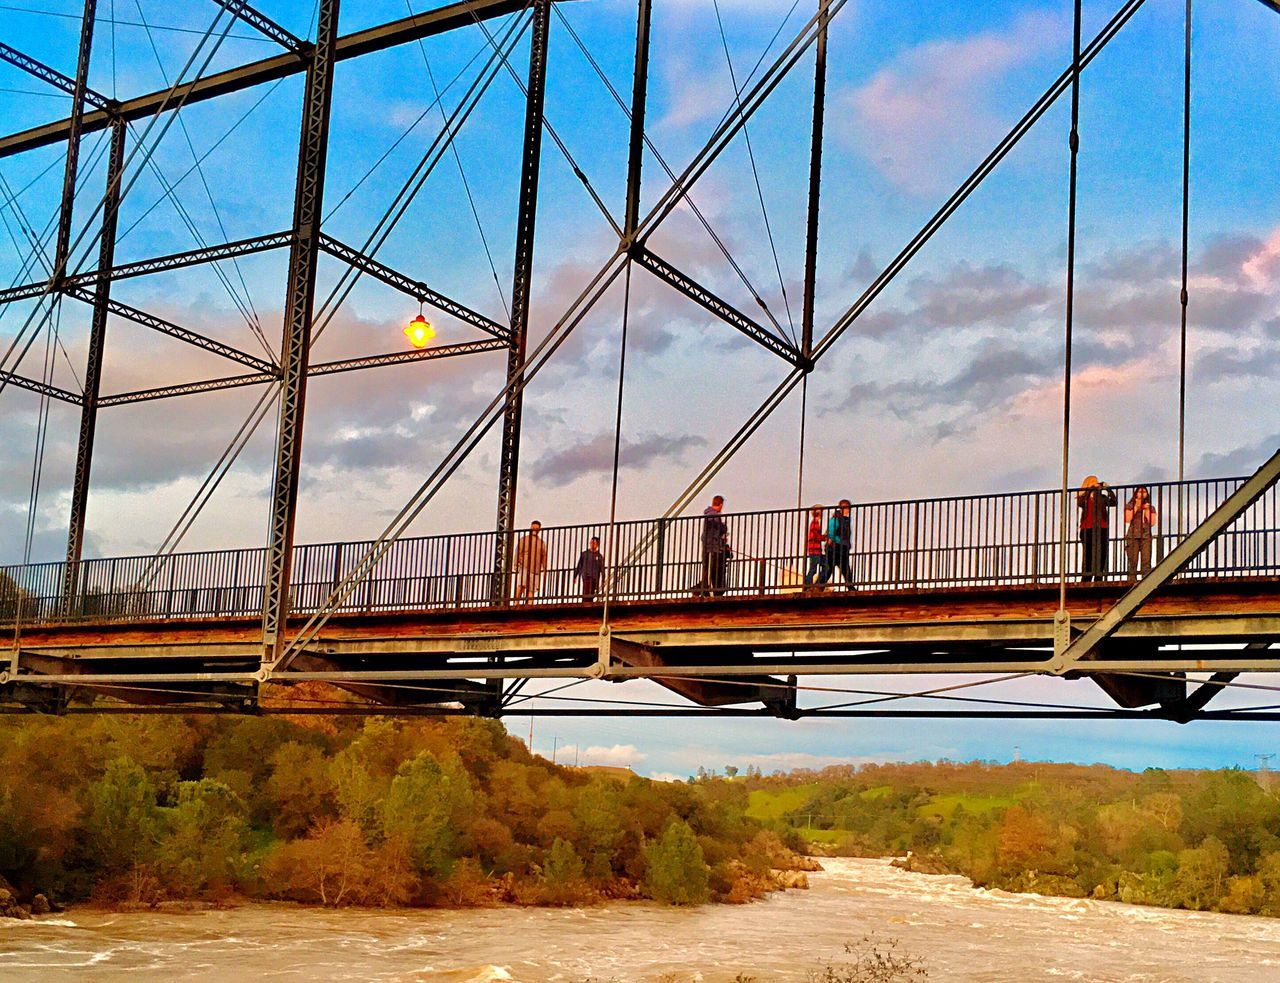 bridge - man made structure, connection, architecture, sky, transportation, engineering, built structure, suspension bridge, bridge, river, cloud - sky, day, water, road, outdoors, blue, city, tree, nature, no people